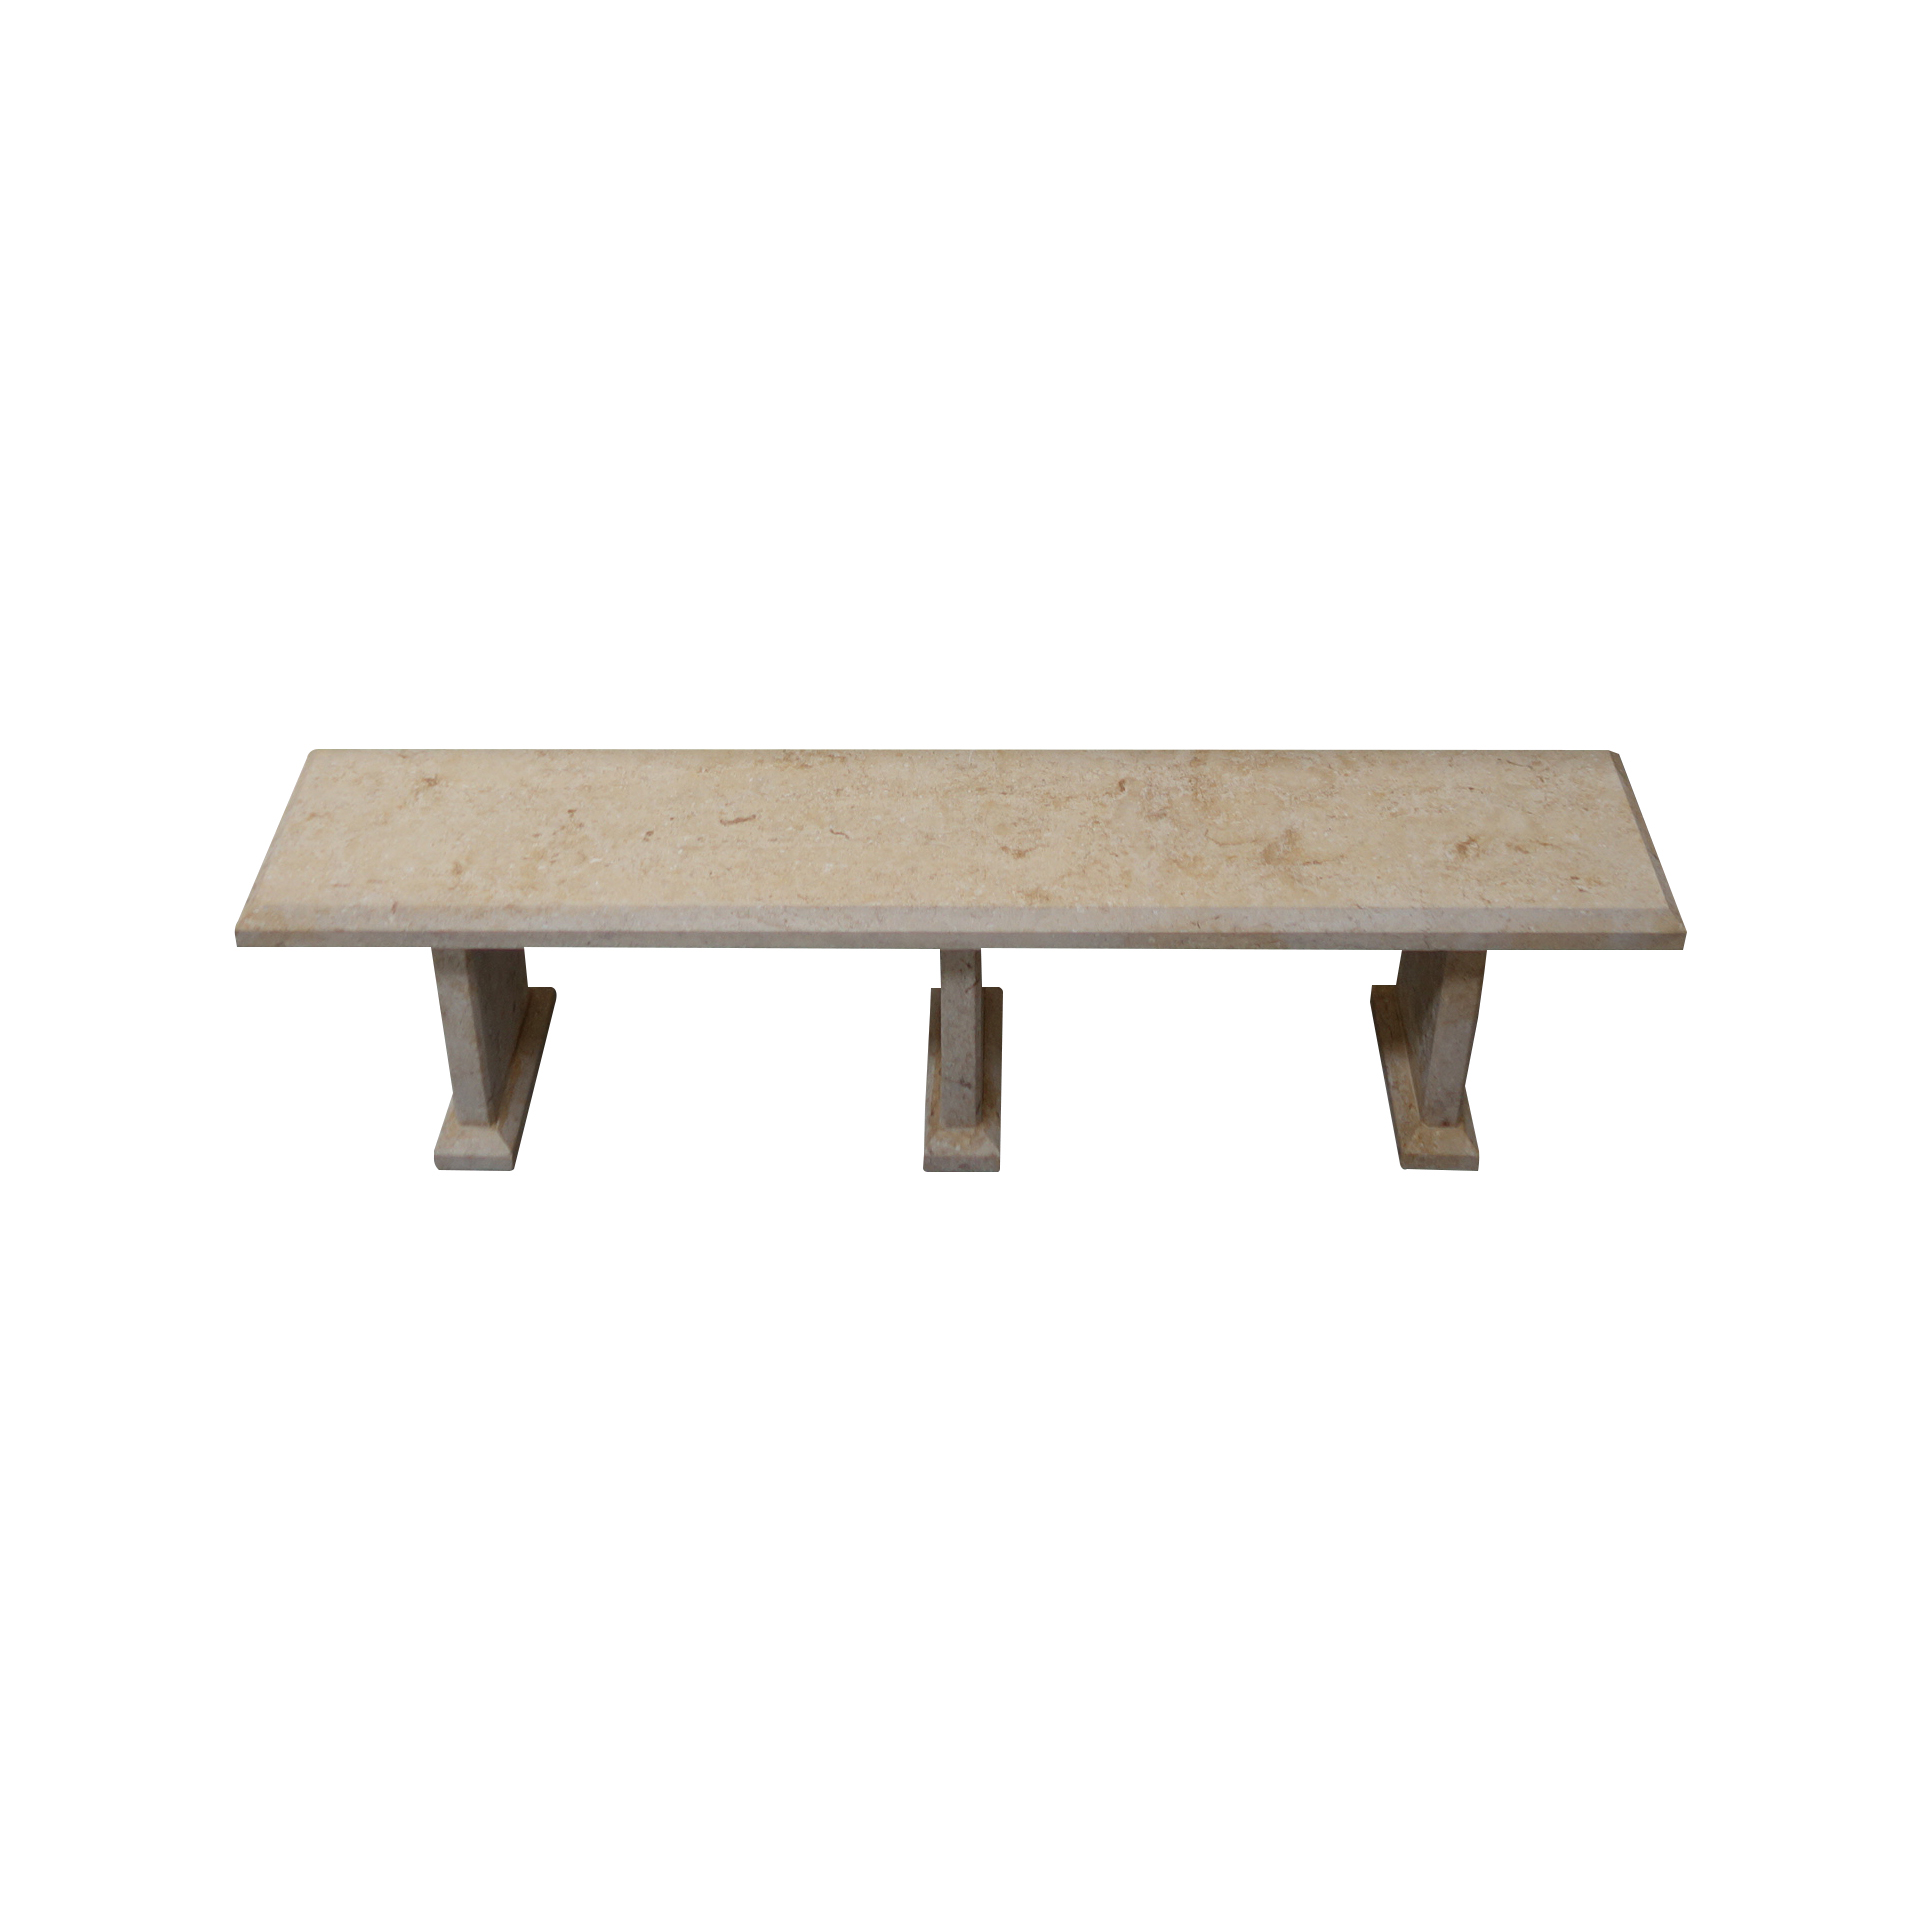 Light Yellow Limestone Table and 4 Bench Set TA-016